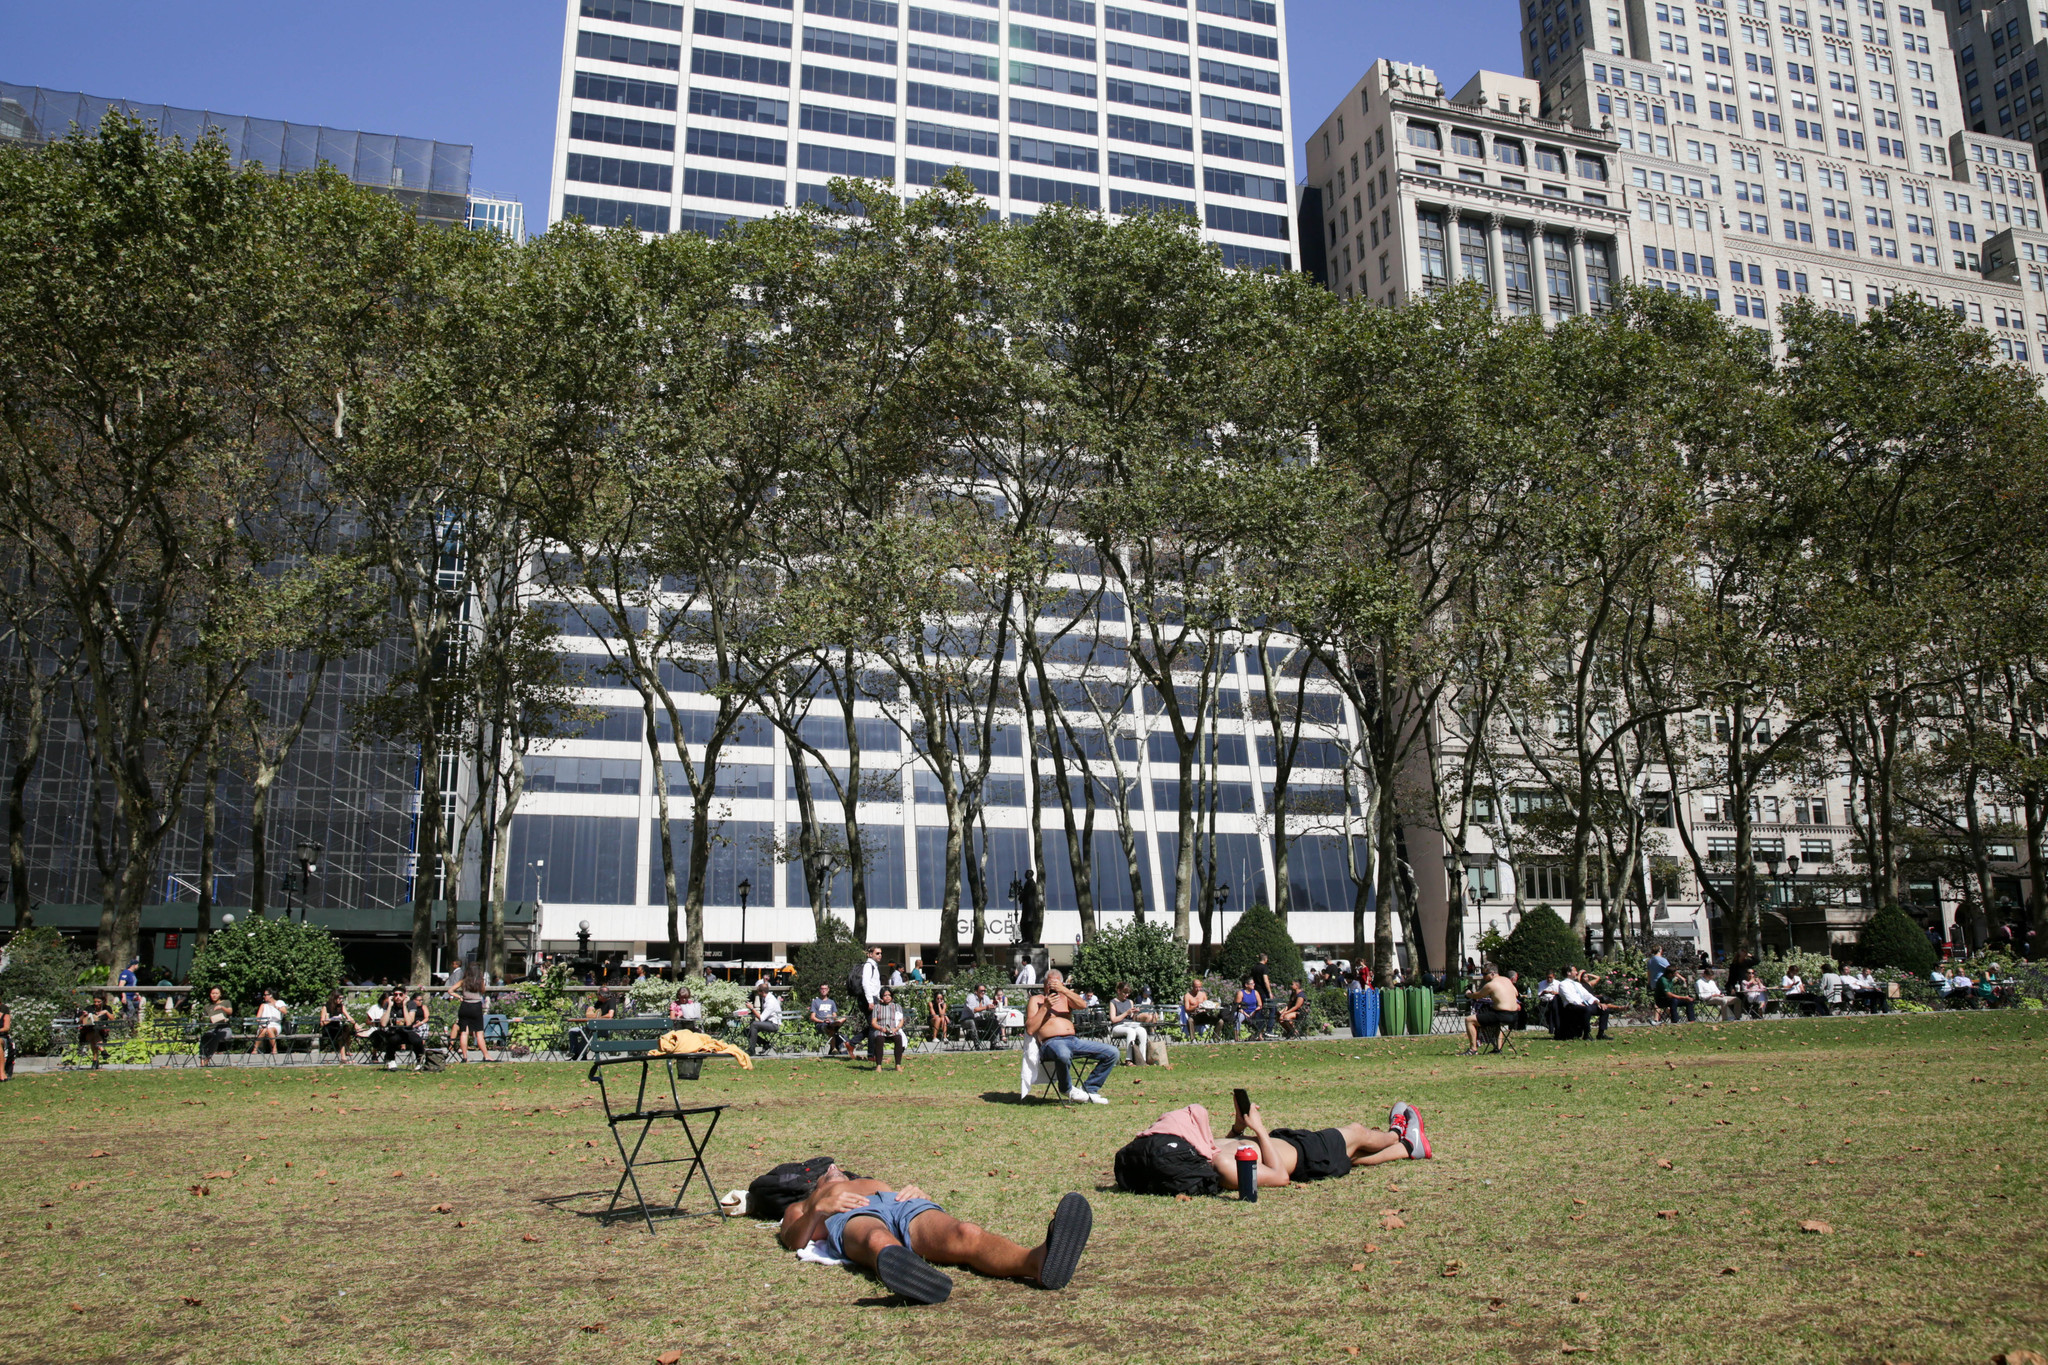 Public spaces in an age of social distancing: How to rethink parks after coronavirus